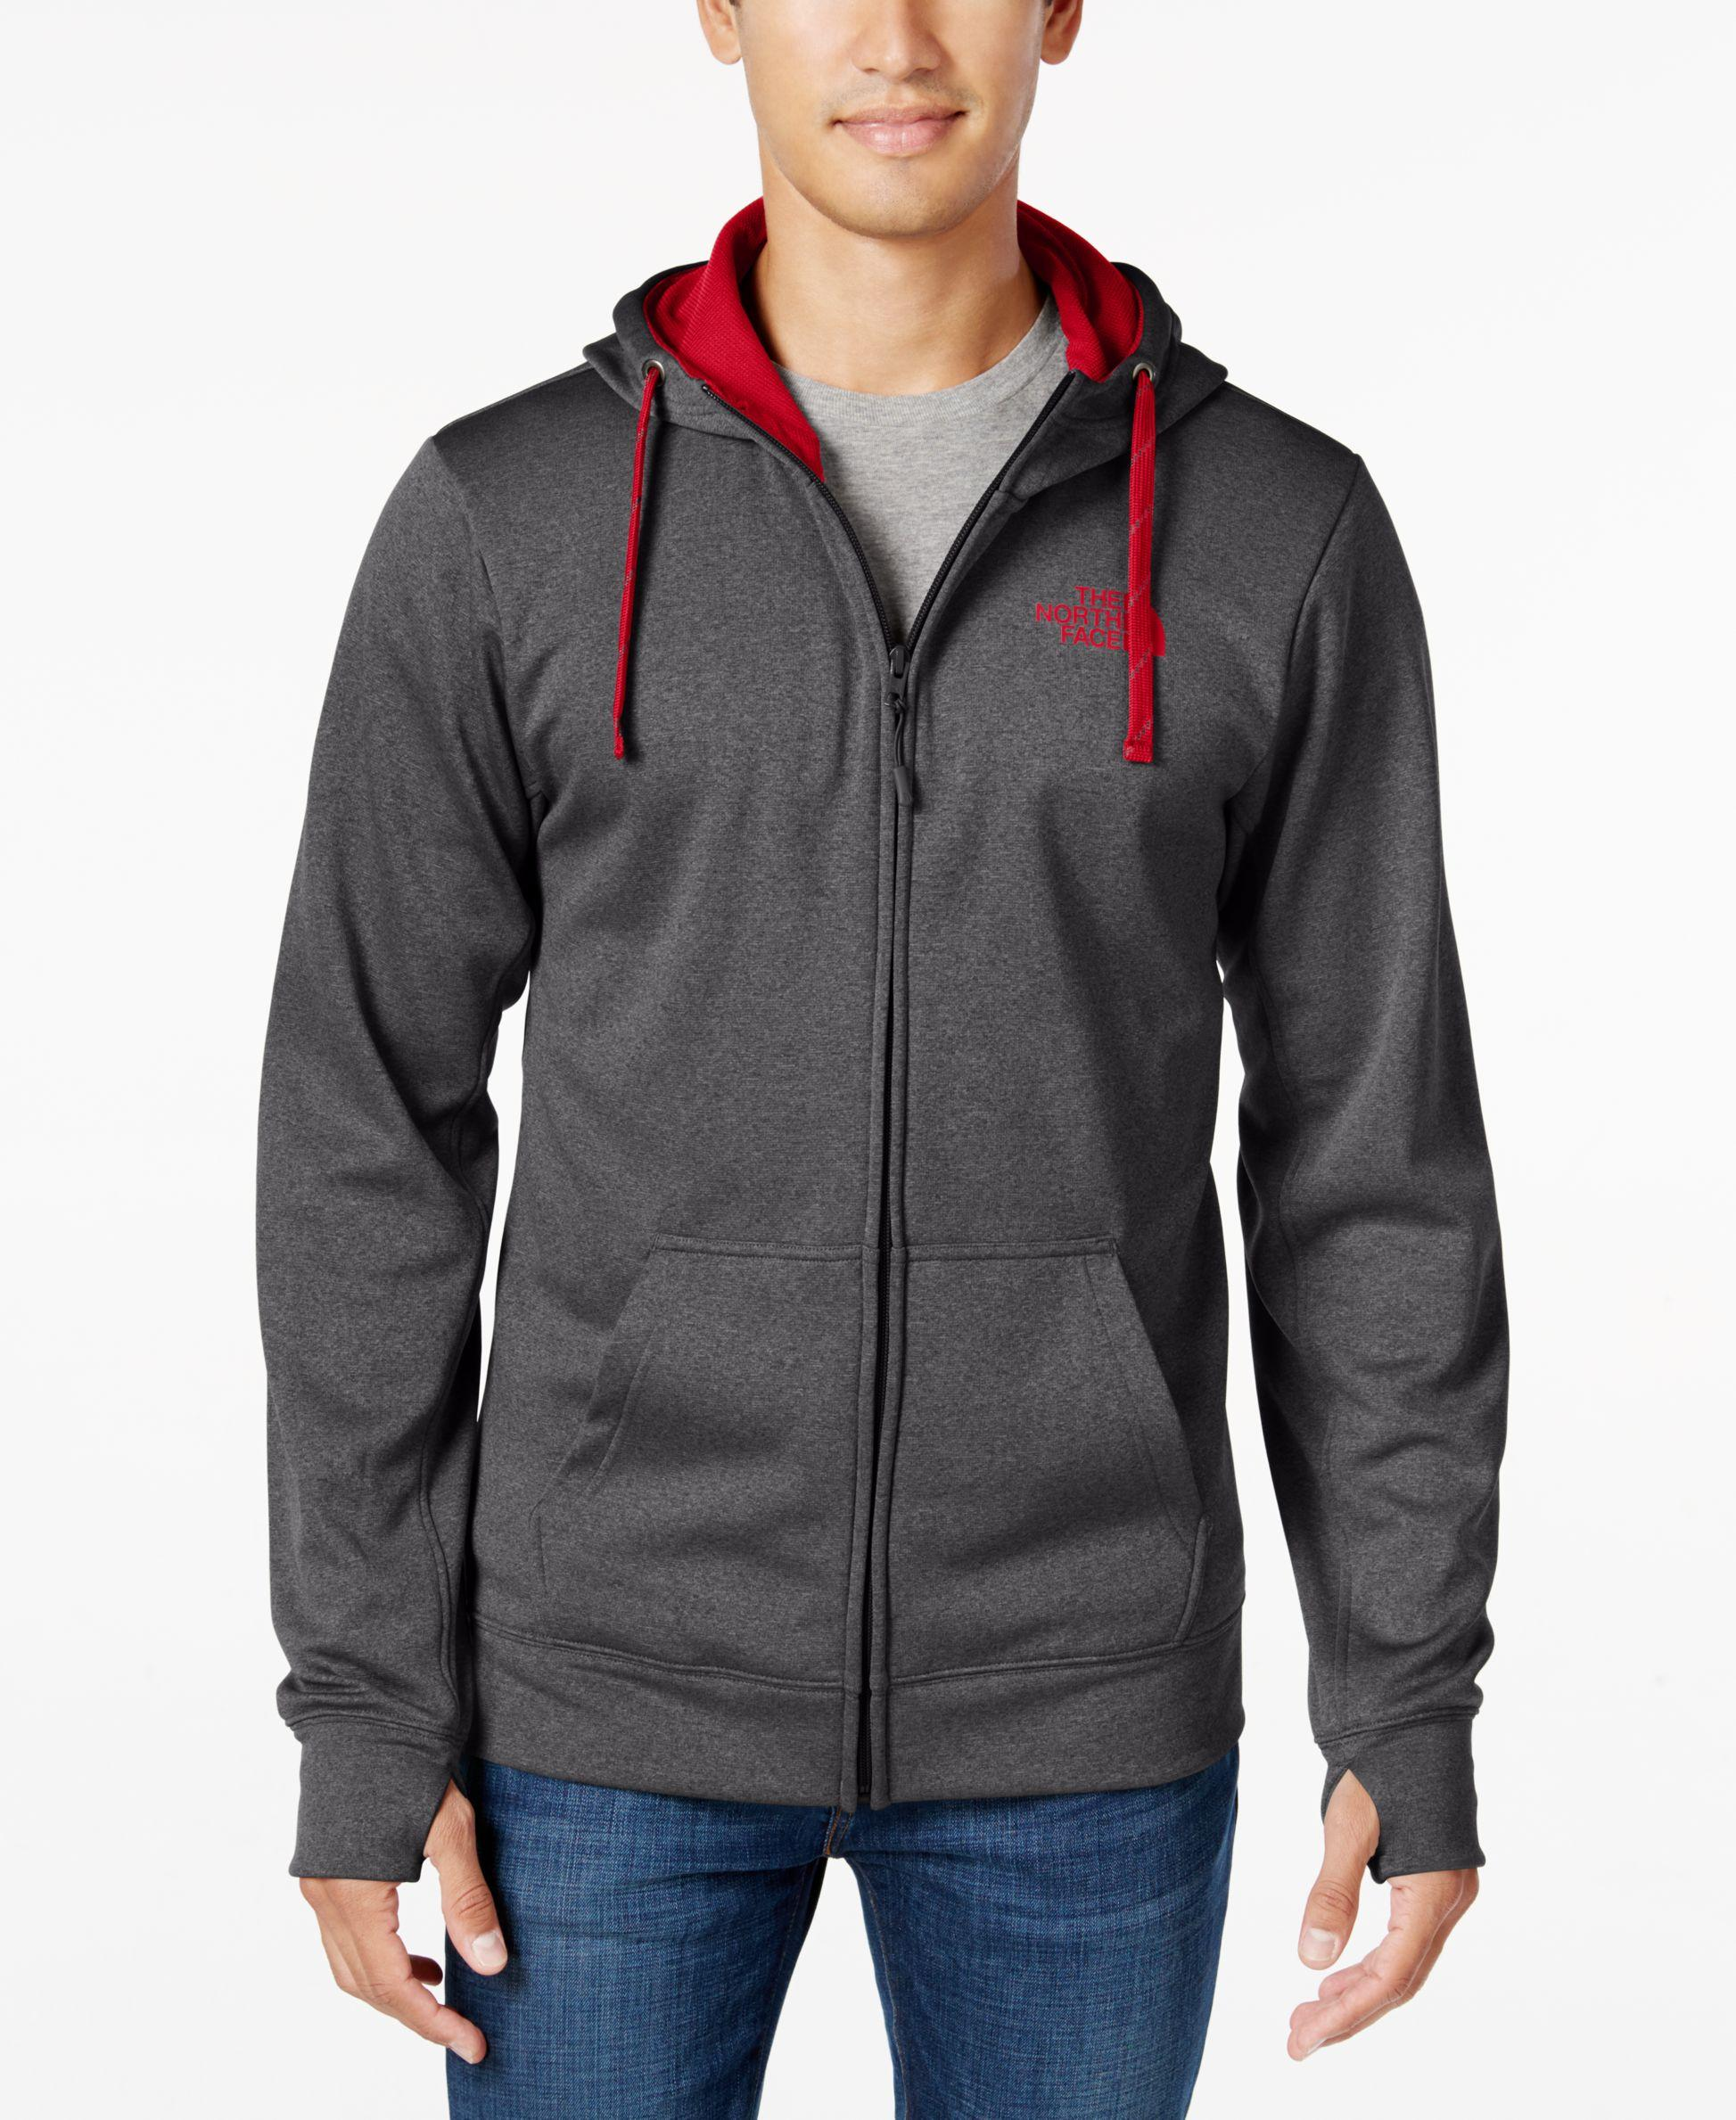 870234a77 The North Face Gray Men's Surgent Technical Zip Hoodie for men